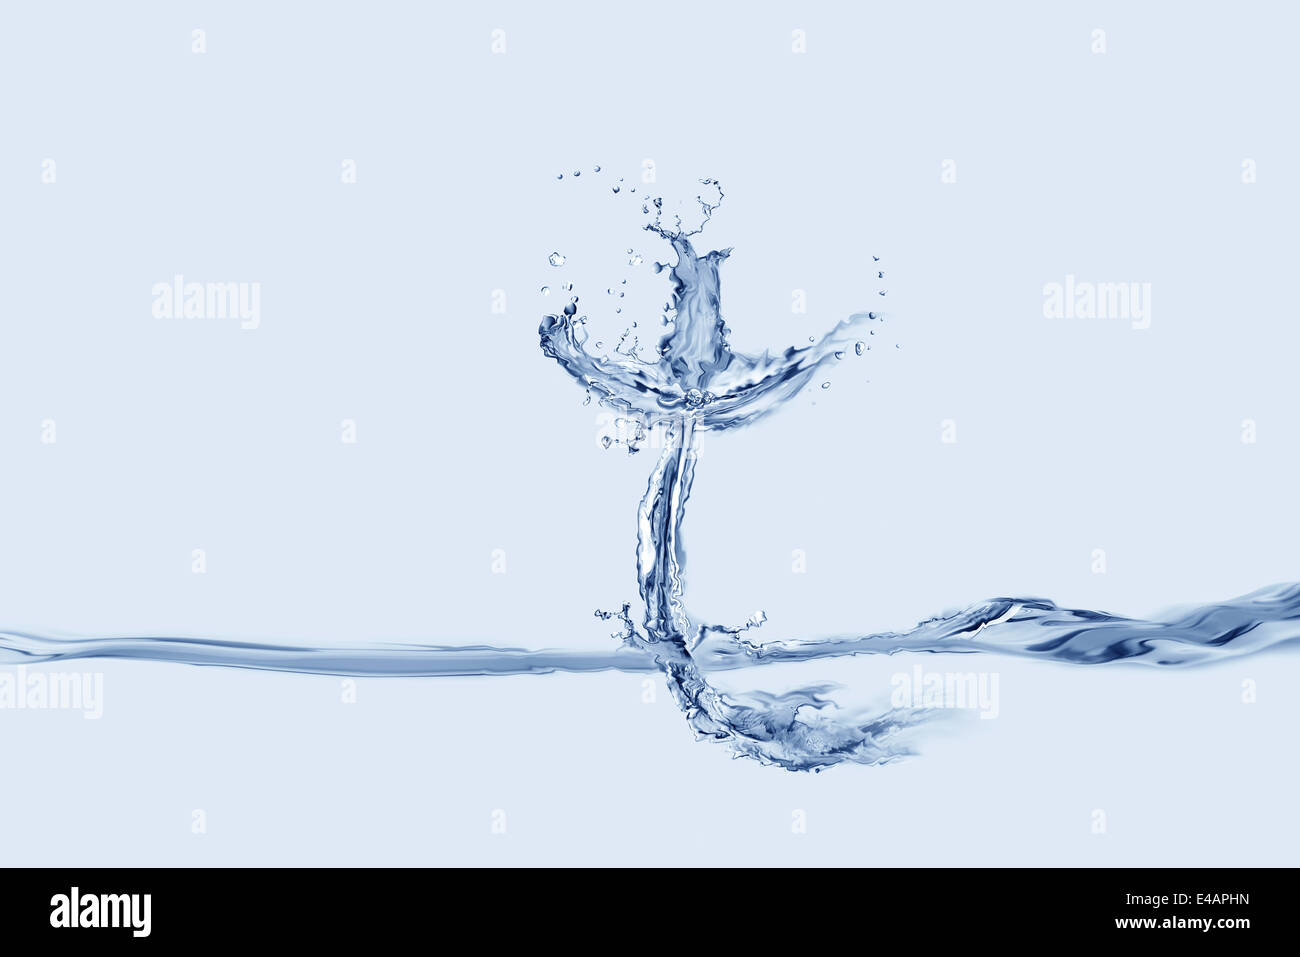 A cross made of Water floating on water. - Stock Image